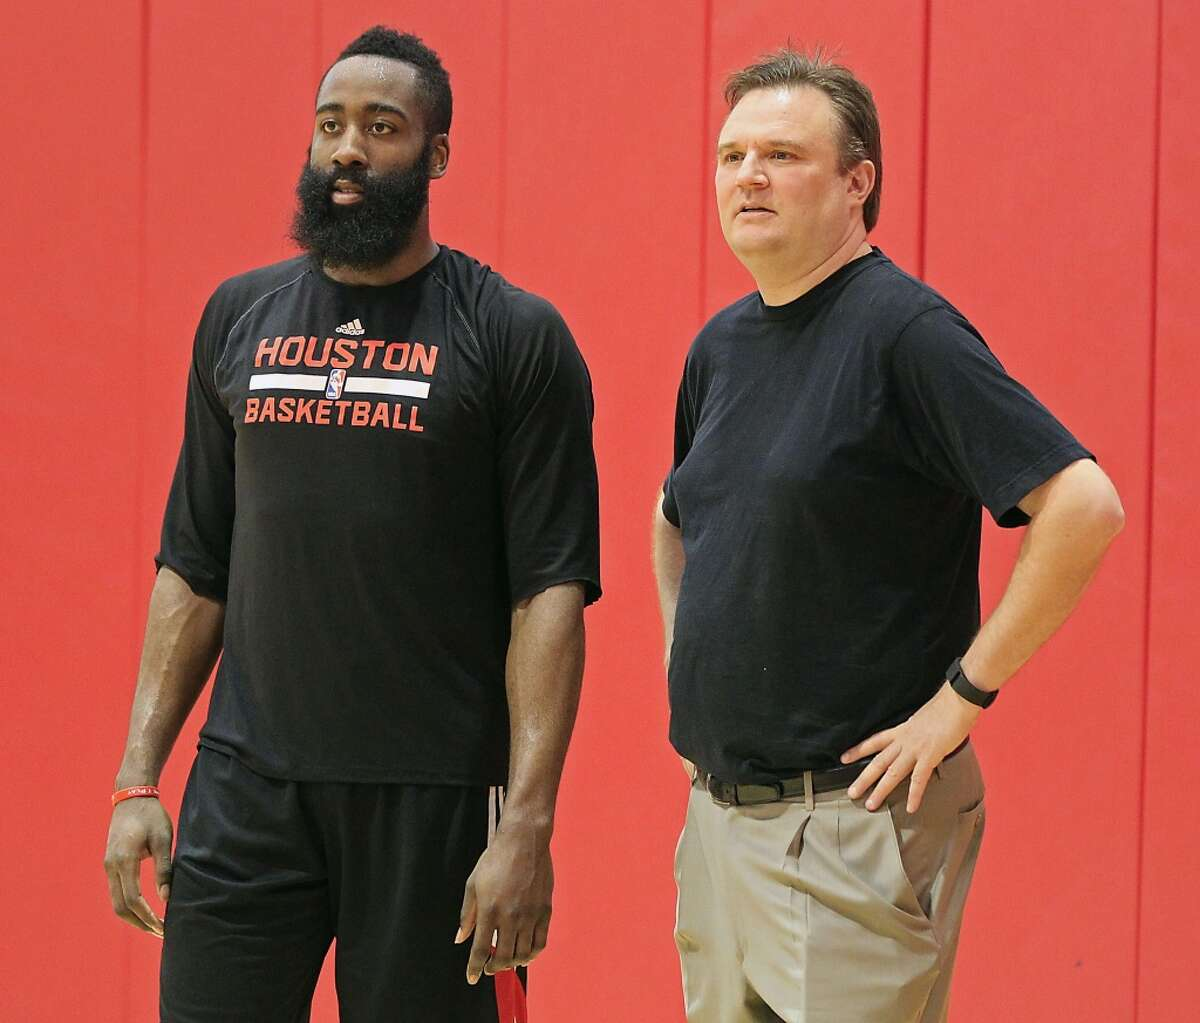 Rockets GM Daryl Morey (right) was quick to have James Harden's back after the star guard's defense was lampooned yet again by online critics. Click through the gallery to relive some of Harden's greatest games with the Rockets.